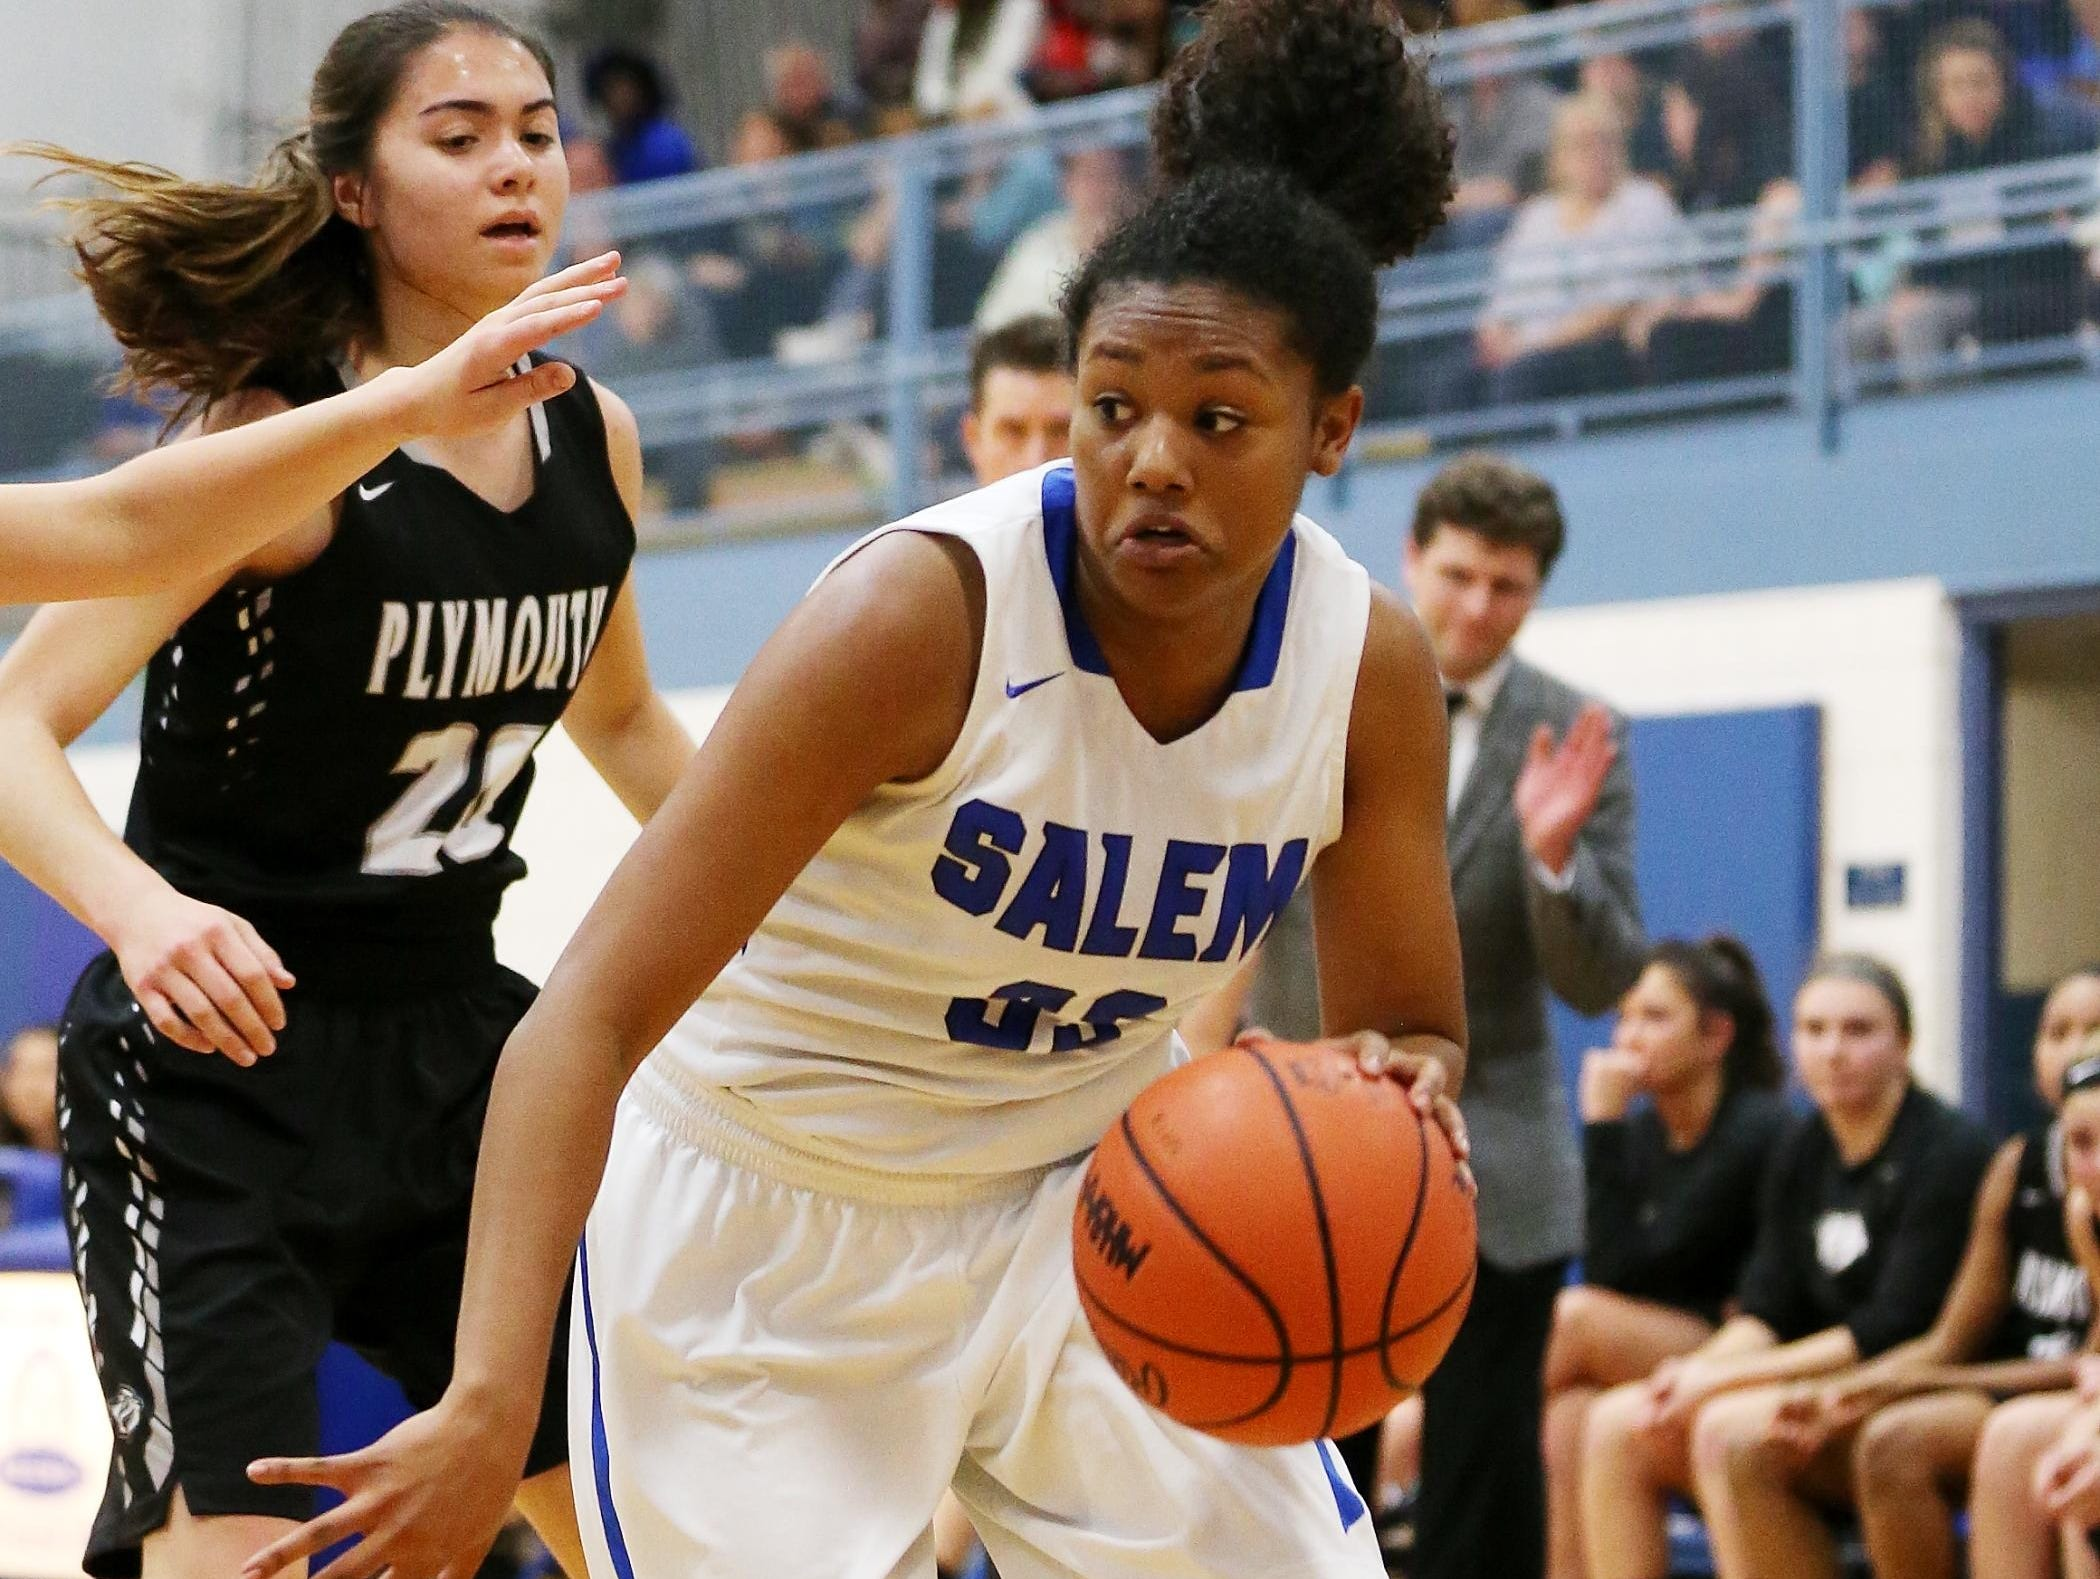 Salem senior Zoe Talley (No. 33) makes an aggressive push toward the basket Tuesday against Plymouth. Talley later left the season opener with a leg injury.